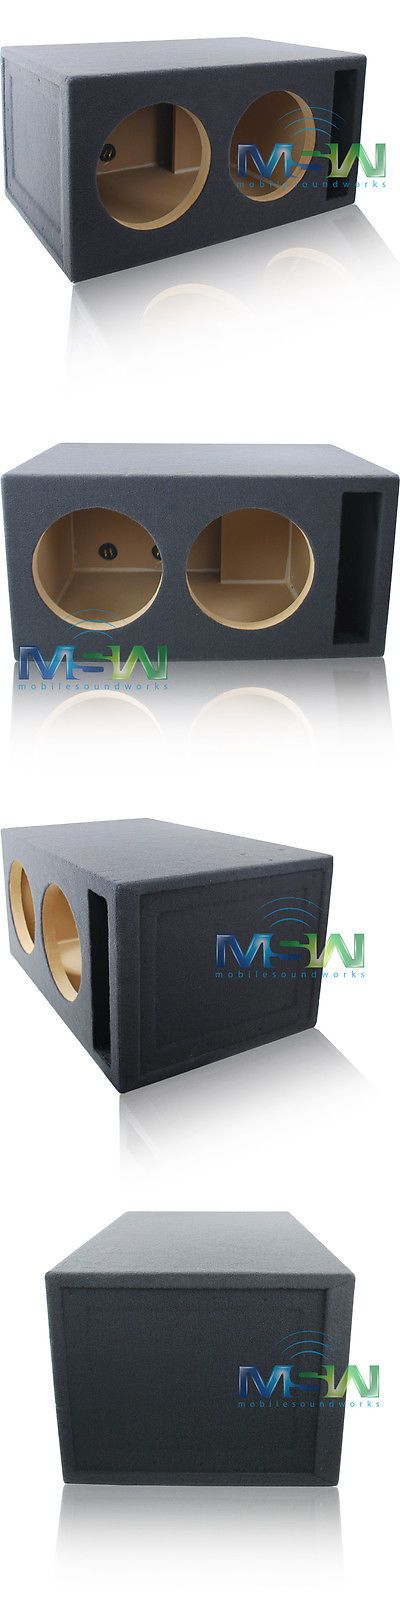 Speaker Sub Enclosures: Custom Slot-Ported Mdf Enclosure Box For (2) 12 Sub Woofers 4 Ft^3 Tuned @ 32Hz -> BUY IT NOW ONLY: $159.99 on eBay!